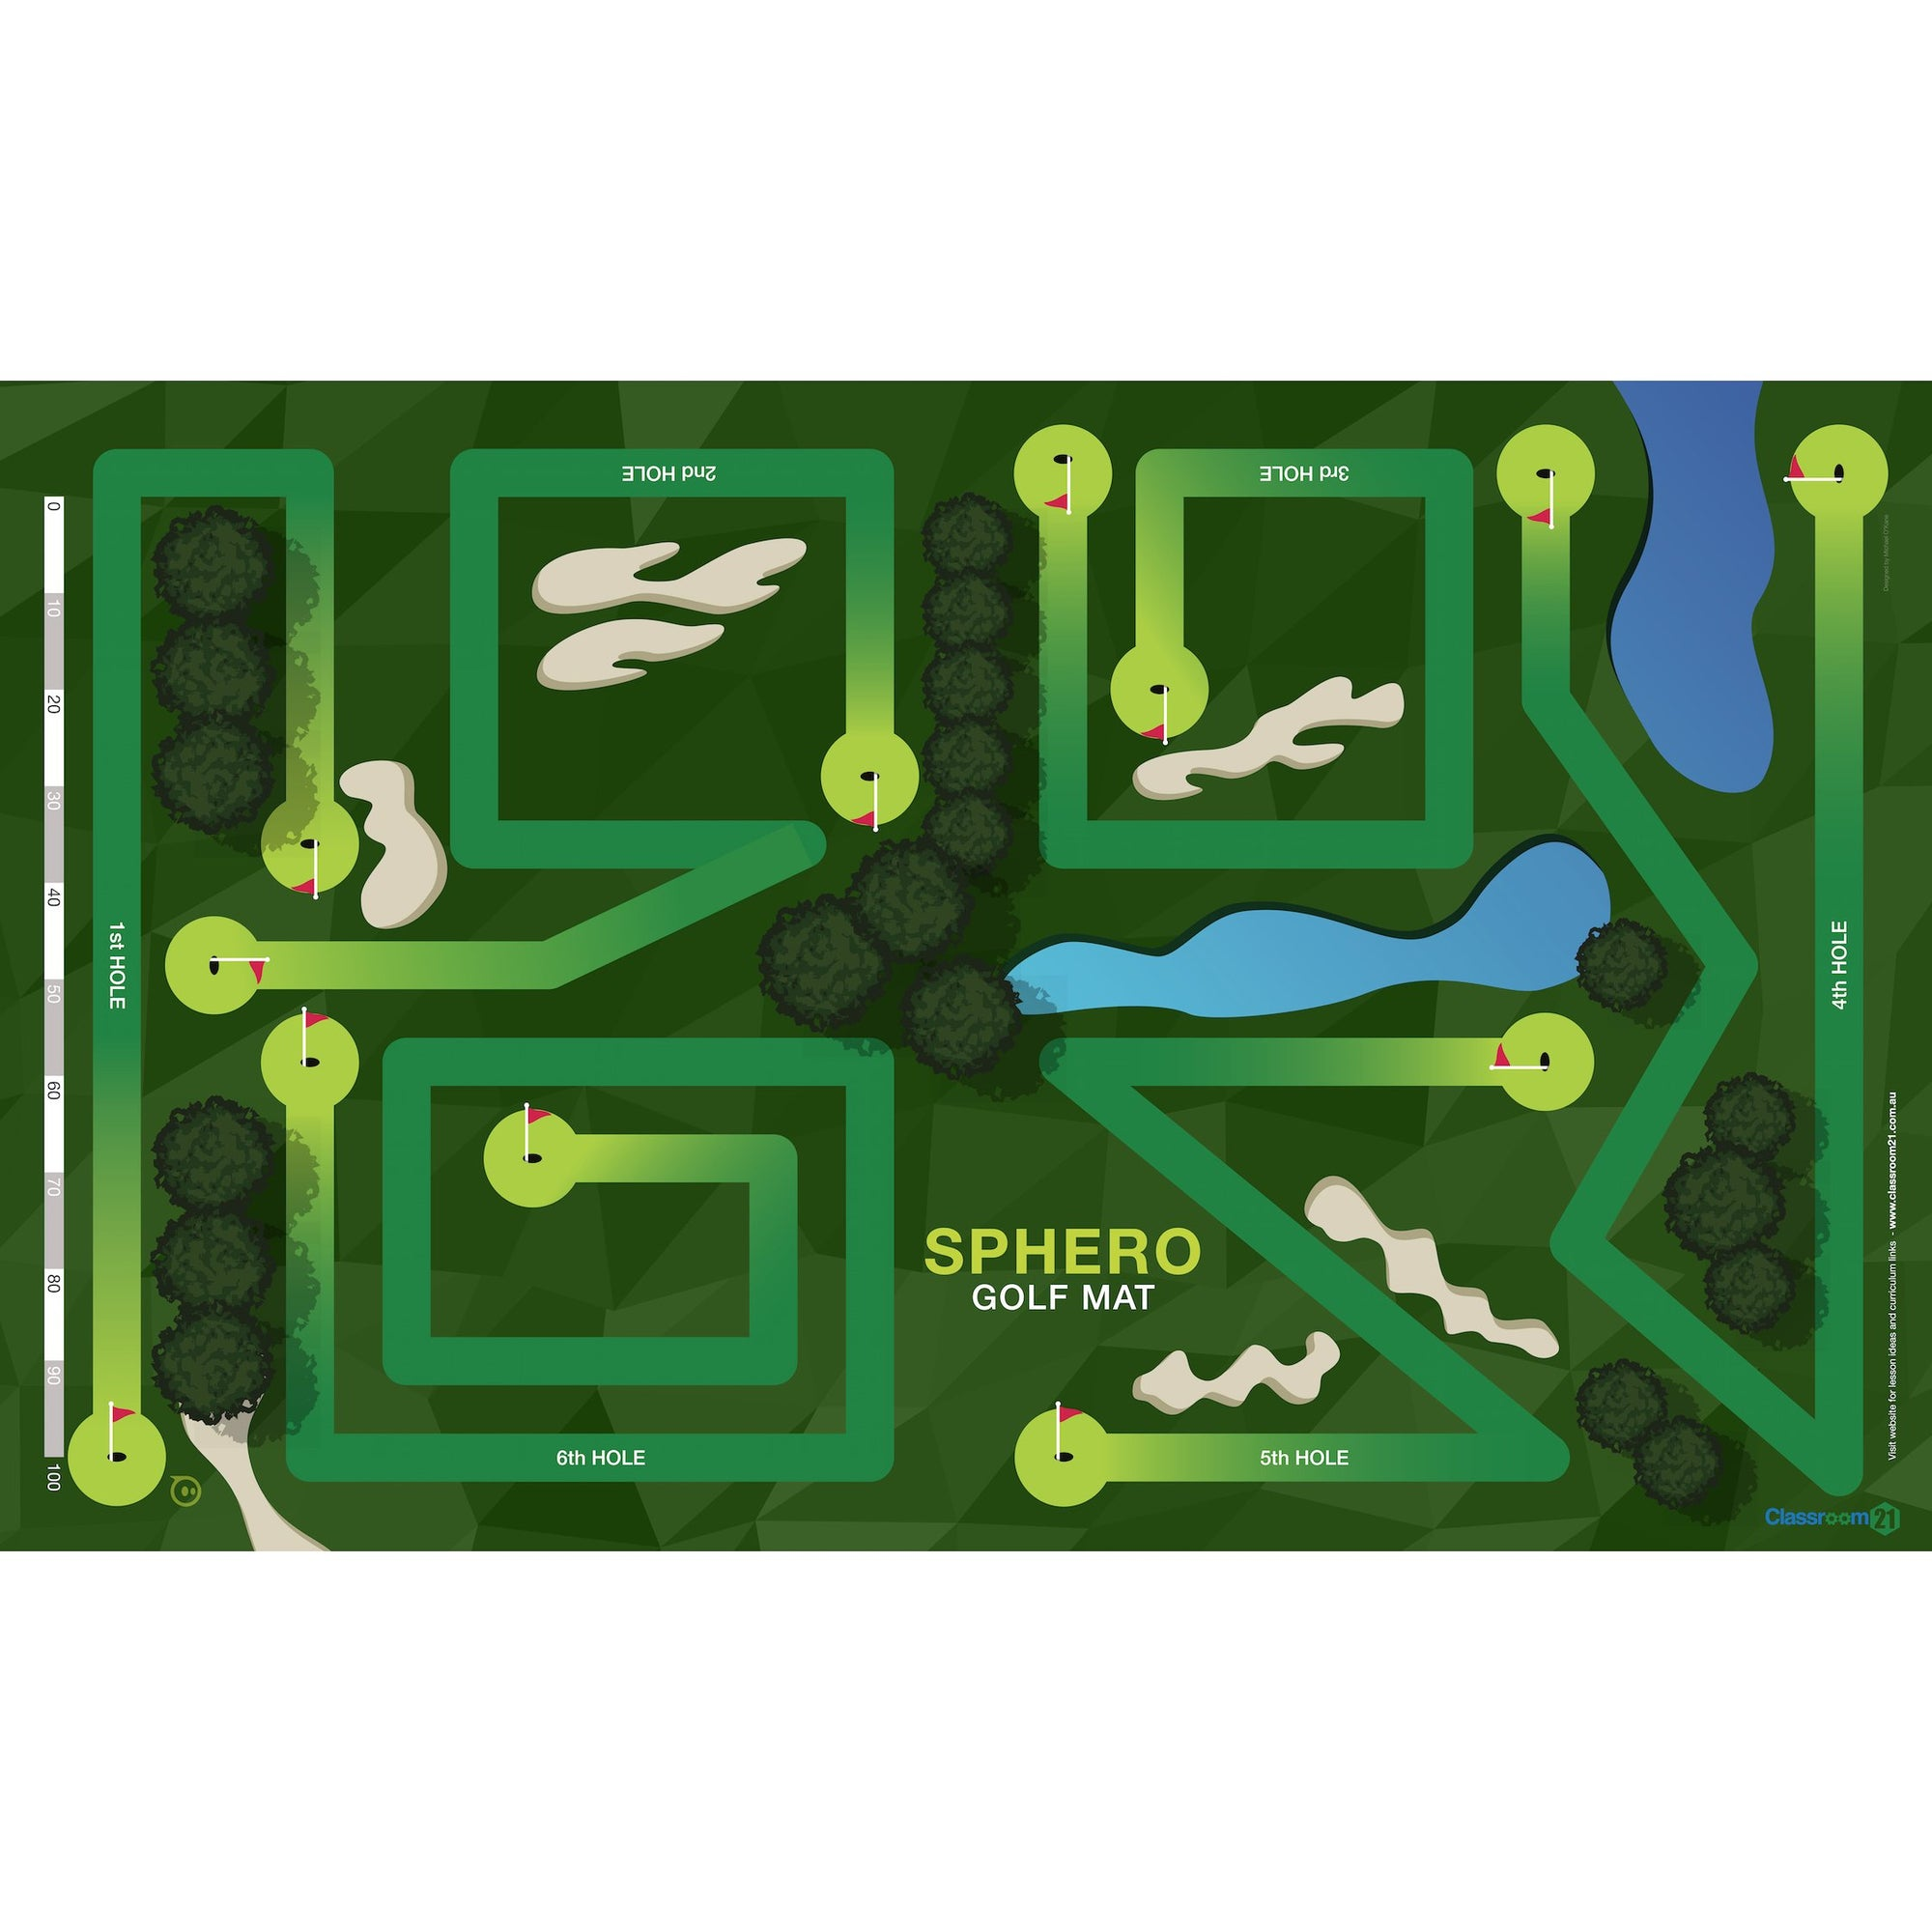 Sphero Golf Mat